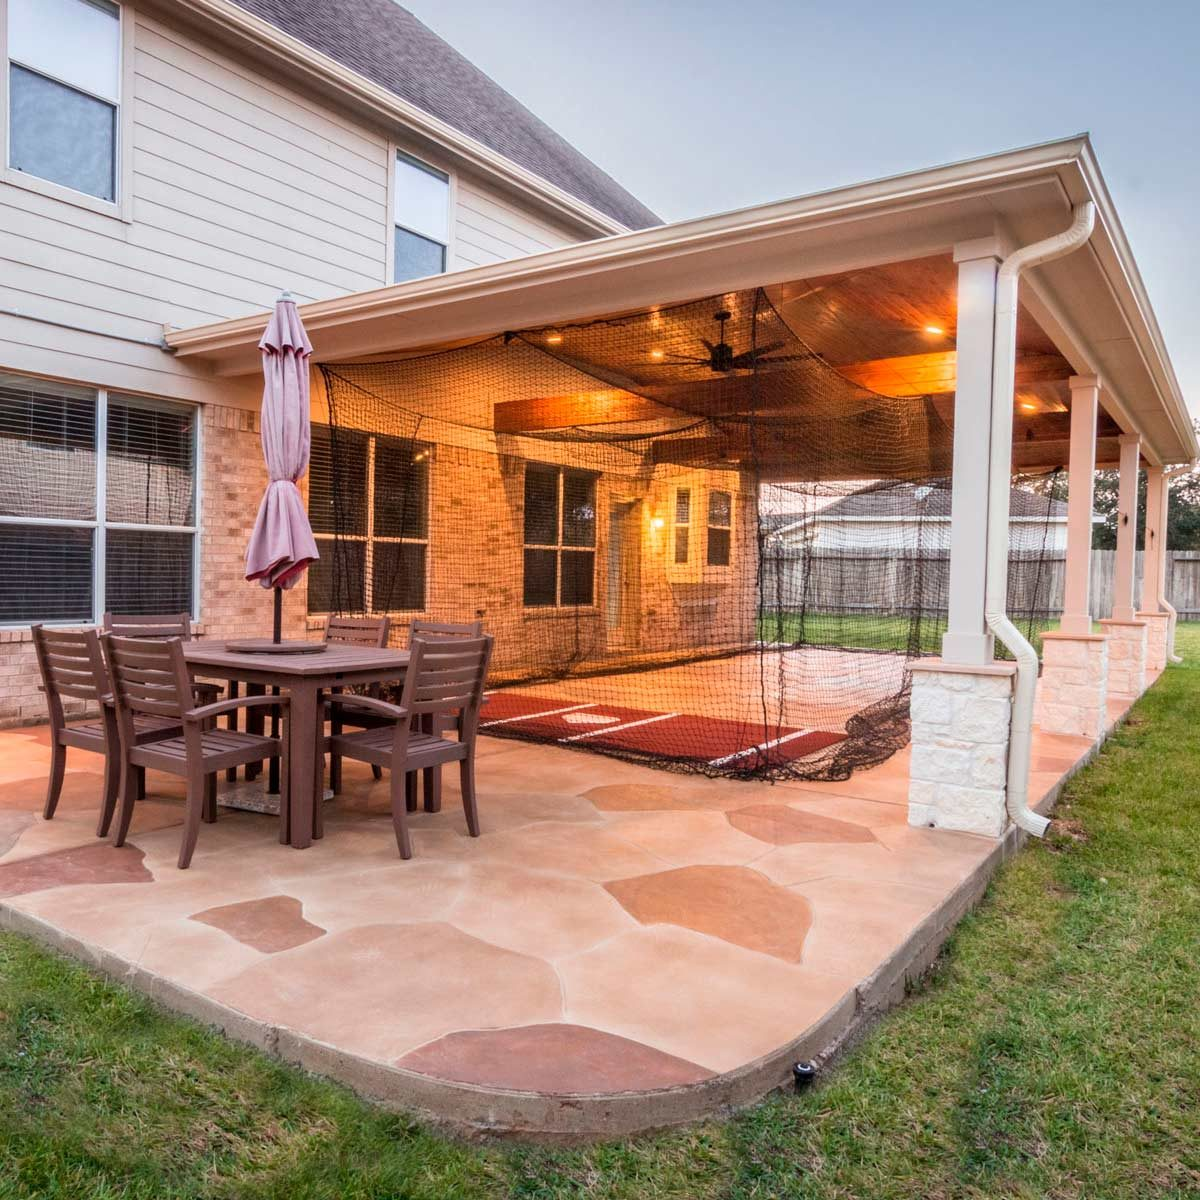 12 Stamped Concrete Patio Ideas We Love | Family Handyman on Ideas For Patio Covers  id=58539